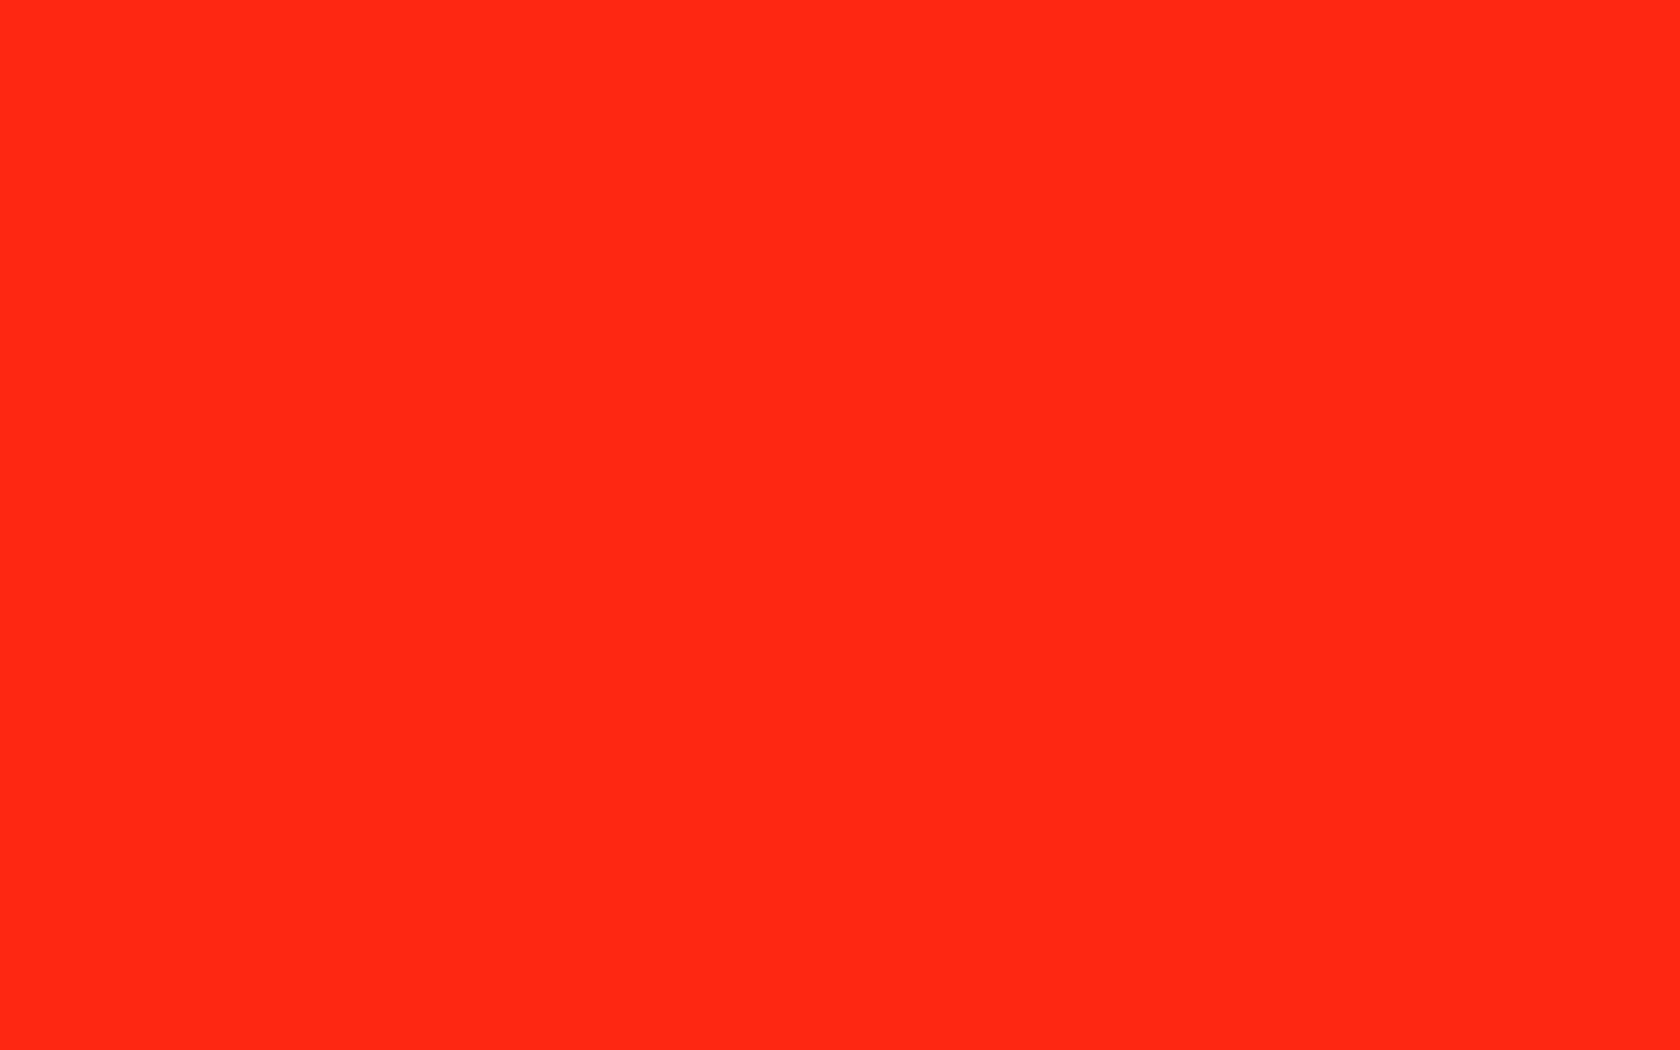 1680x1050 Red RYB Solid Color Background